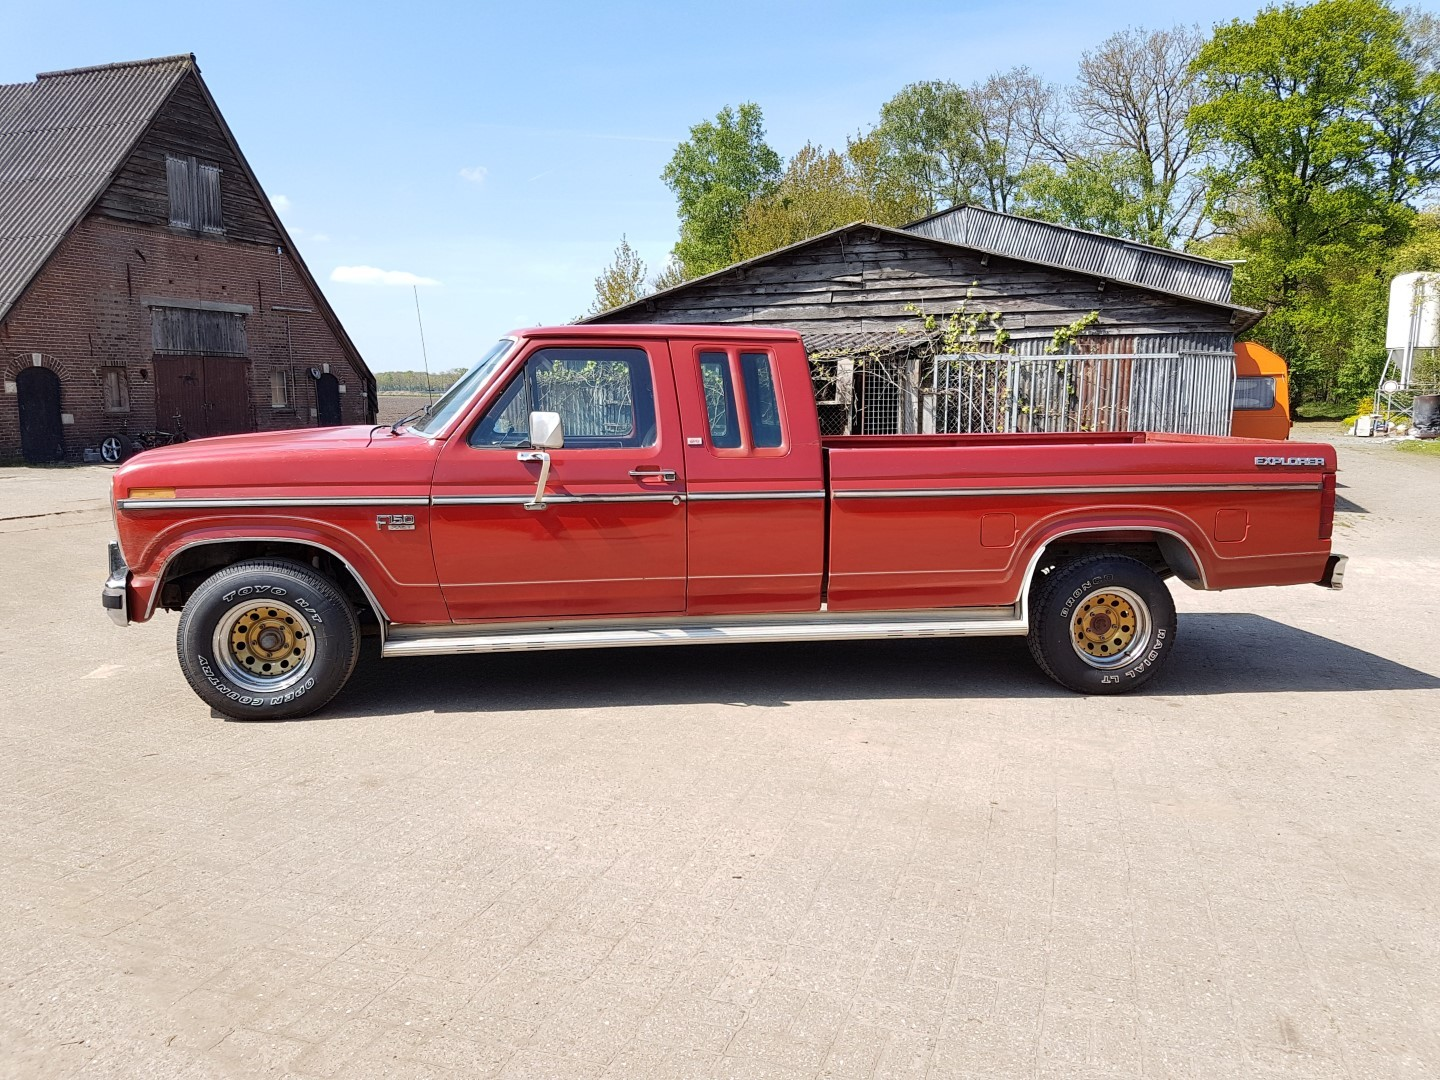 1985 Ford F150 extended cab - 302ci (18)